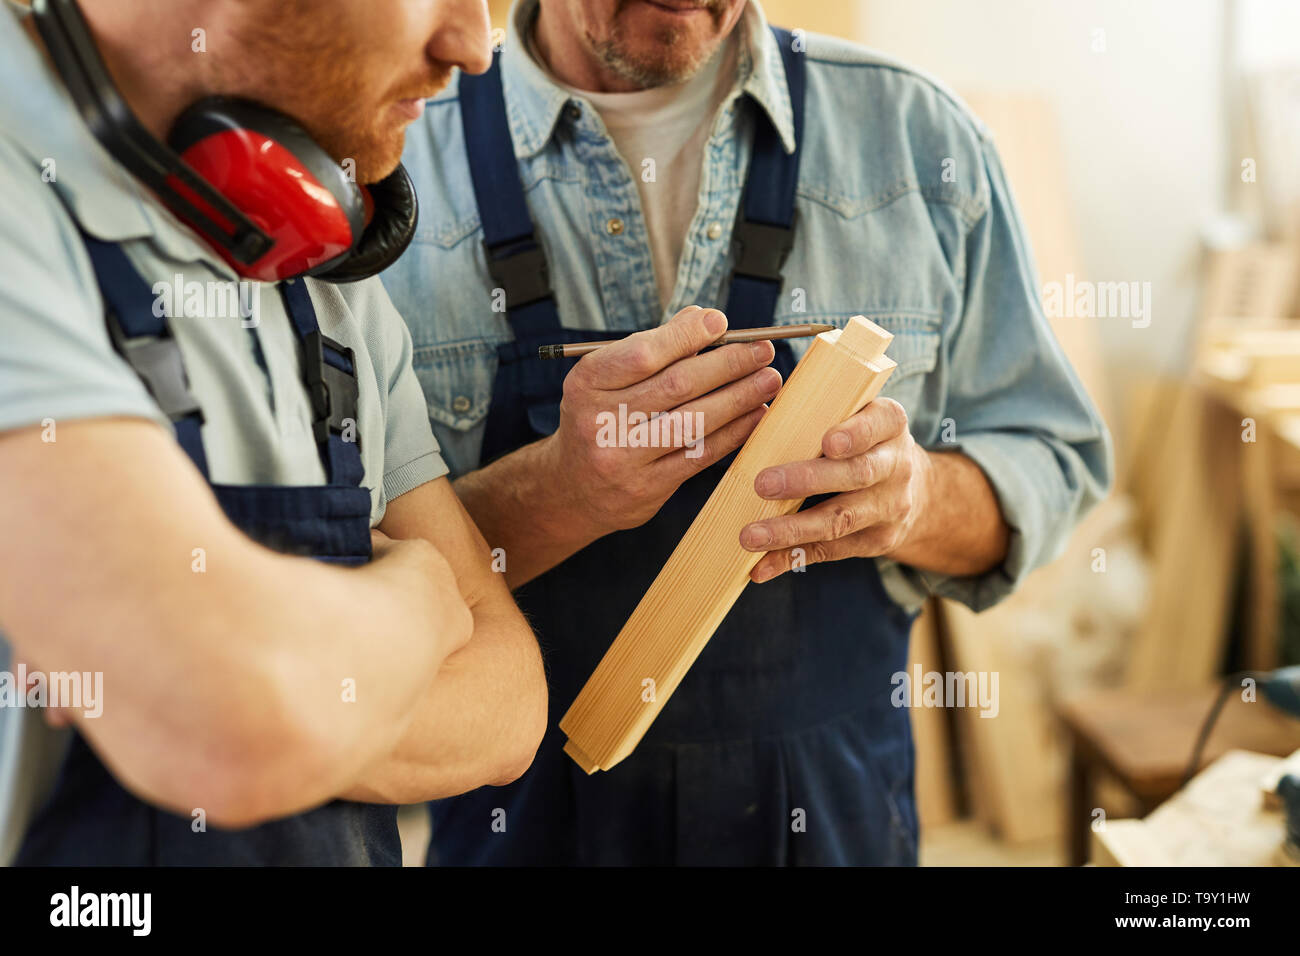 Closeup portrait of senior carpenter teaching apprentice  while working  in joinery workshop, copy space - Stock Image